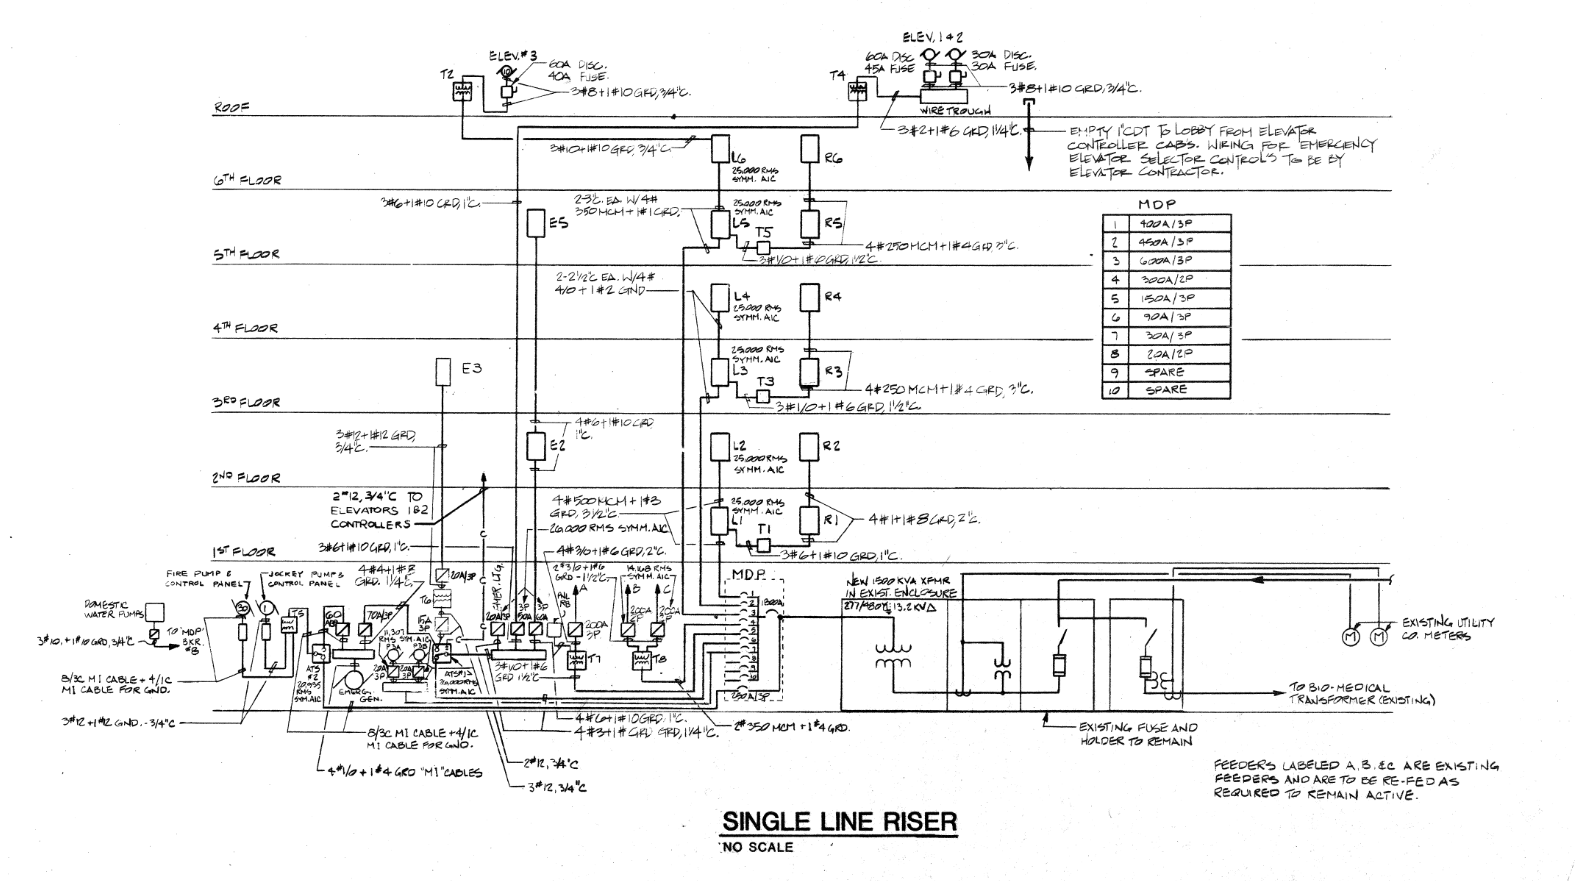 medium resolution of within this main distribution panel are 10 main breakers each supplies power to a different part of the building as can be seen in the single line diagram